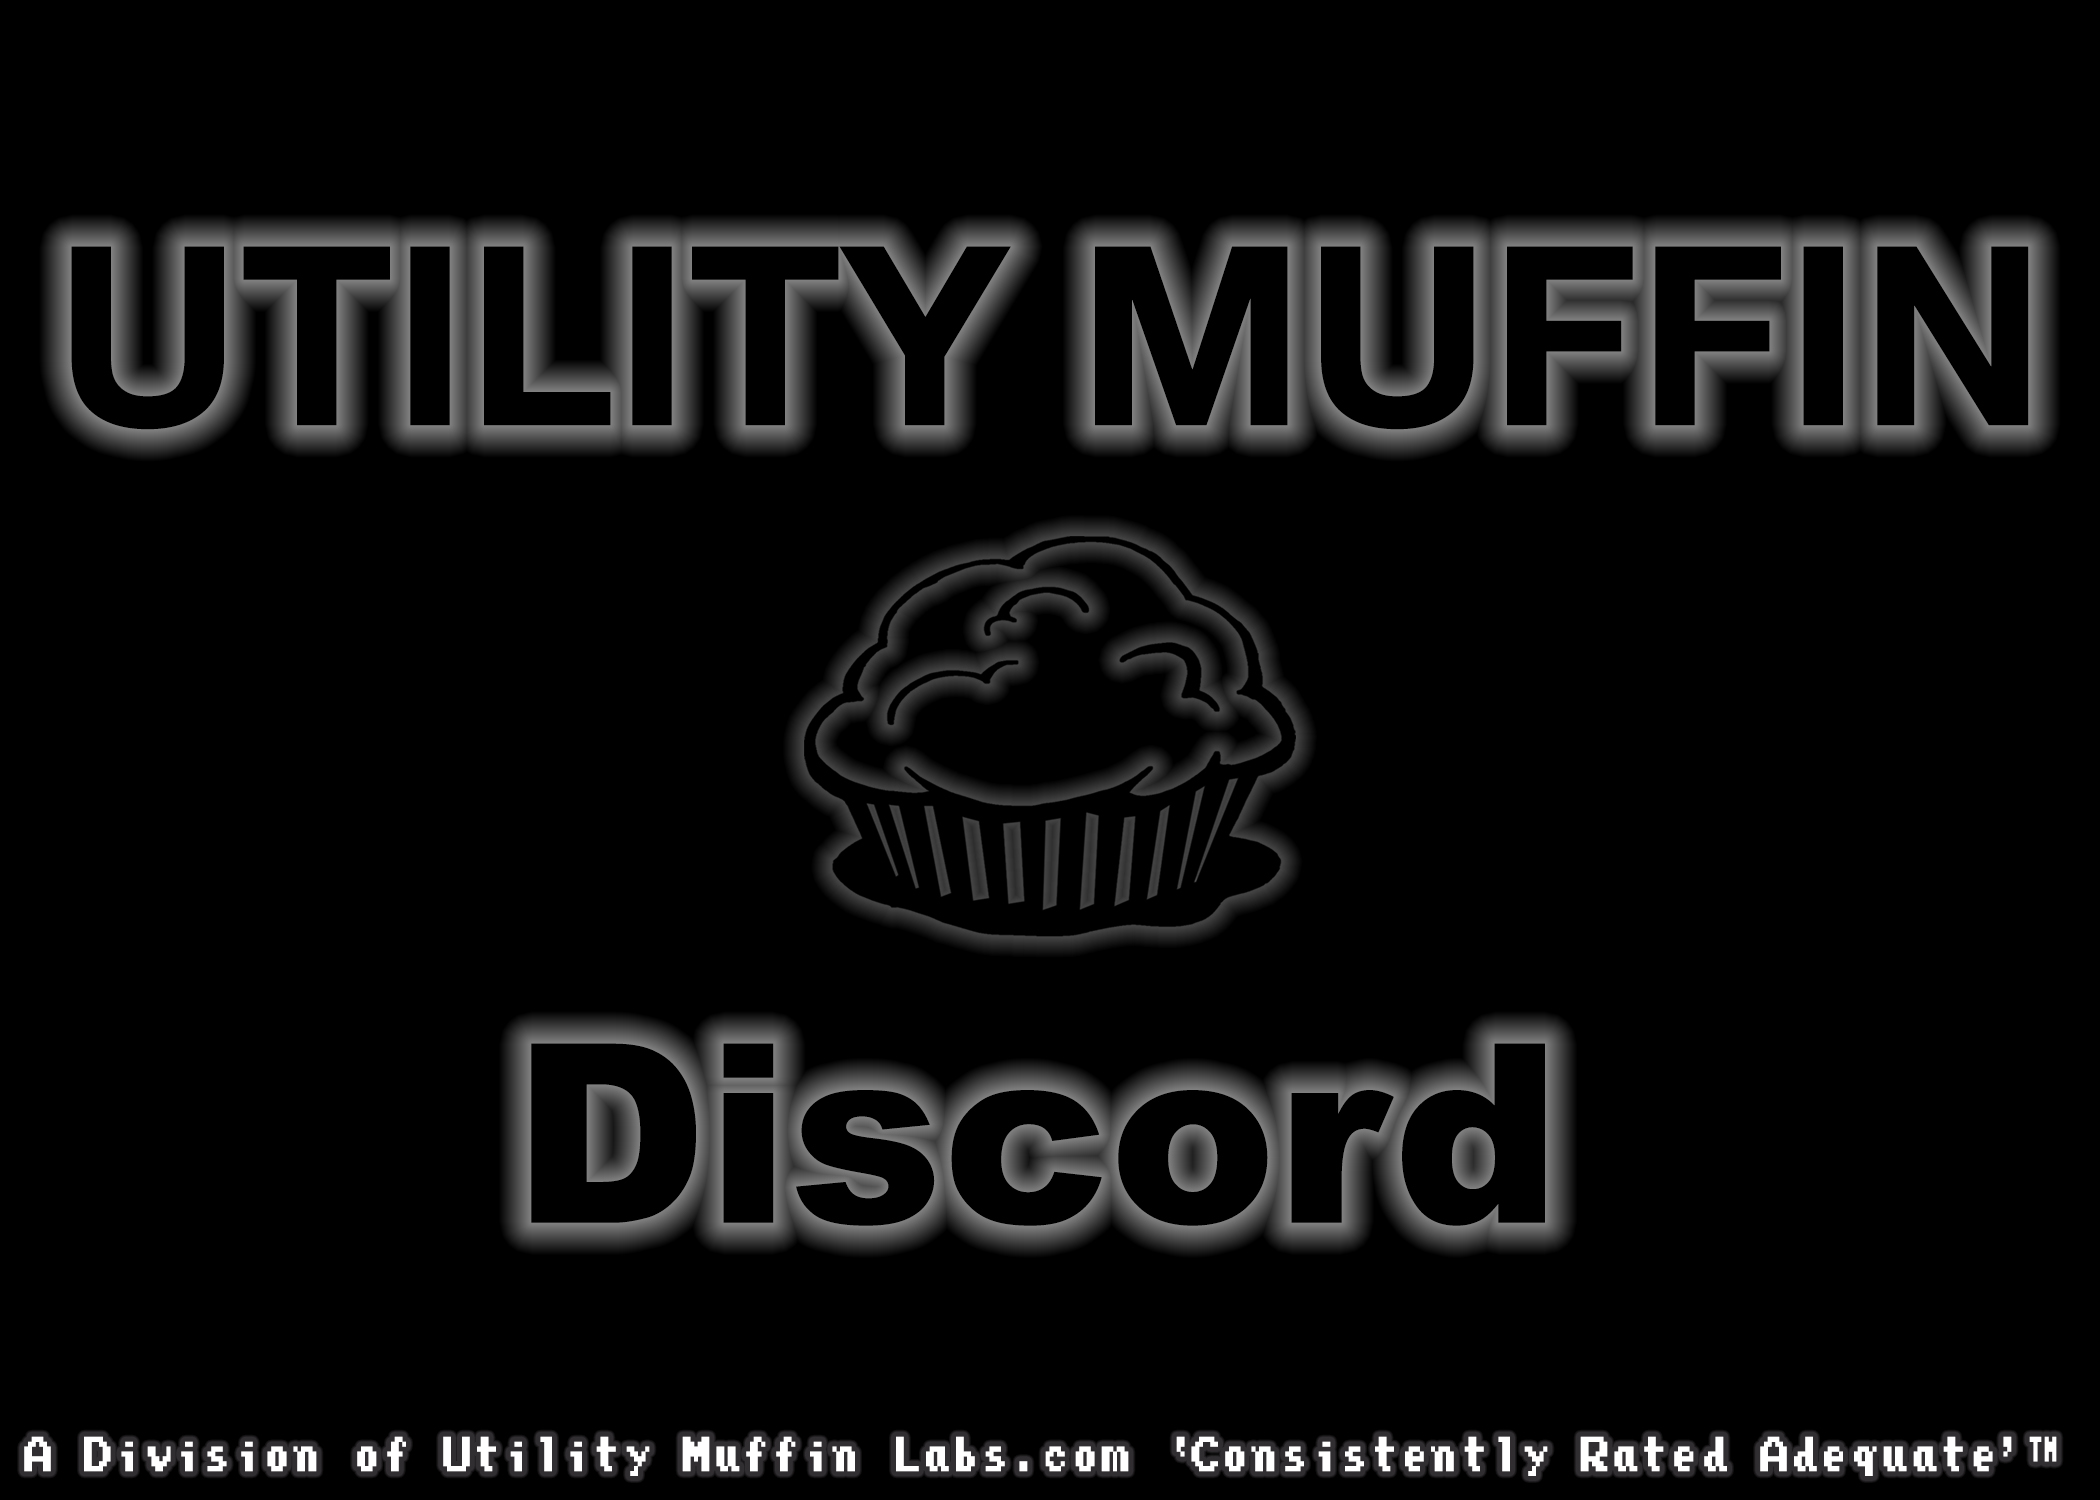 Utility Muffin Blog — Utility Muffin Labs